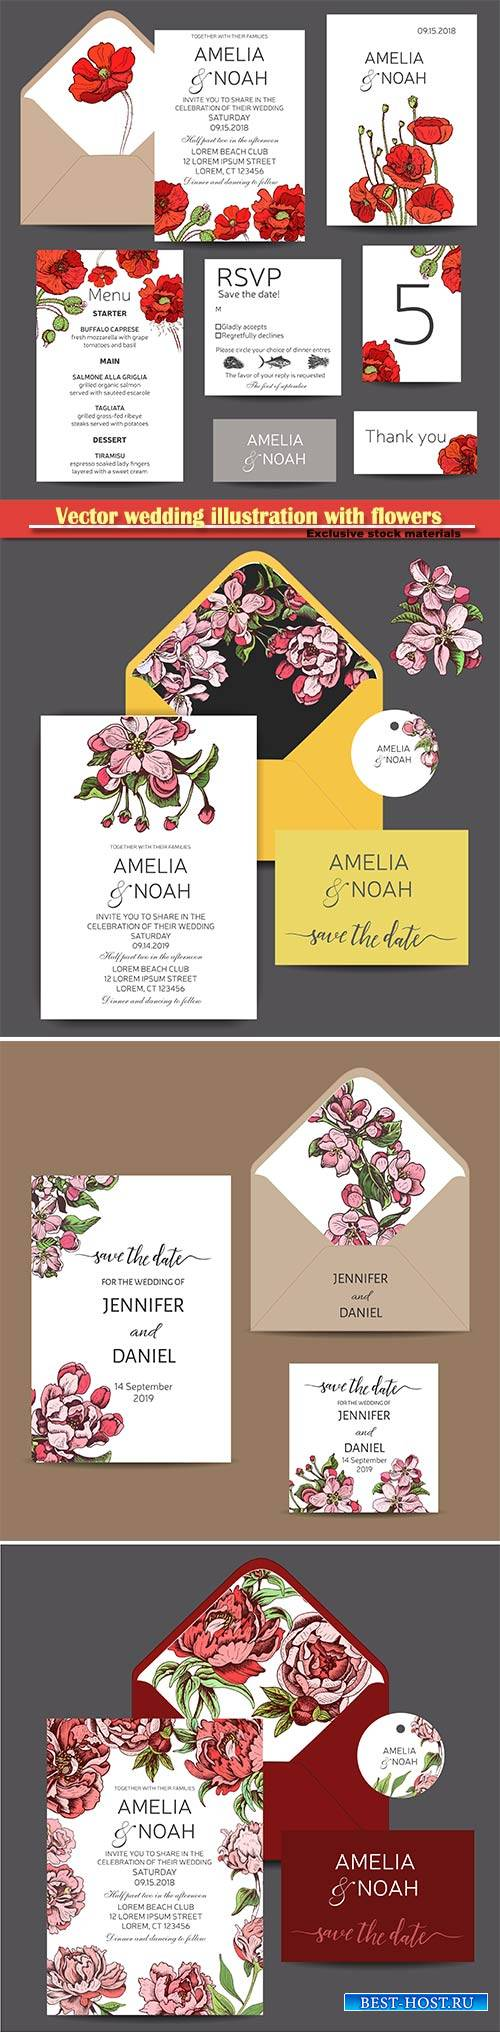 Vector wedding illustration with flowers